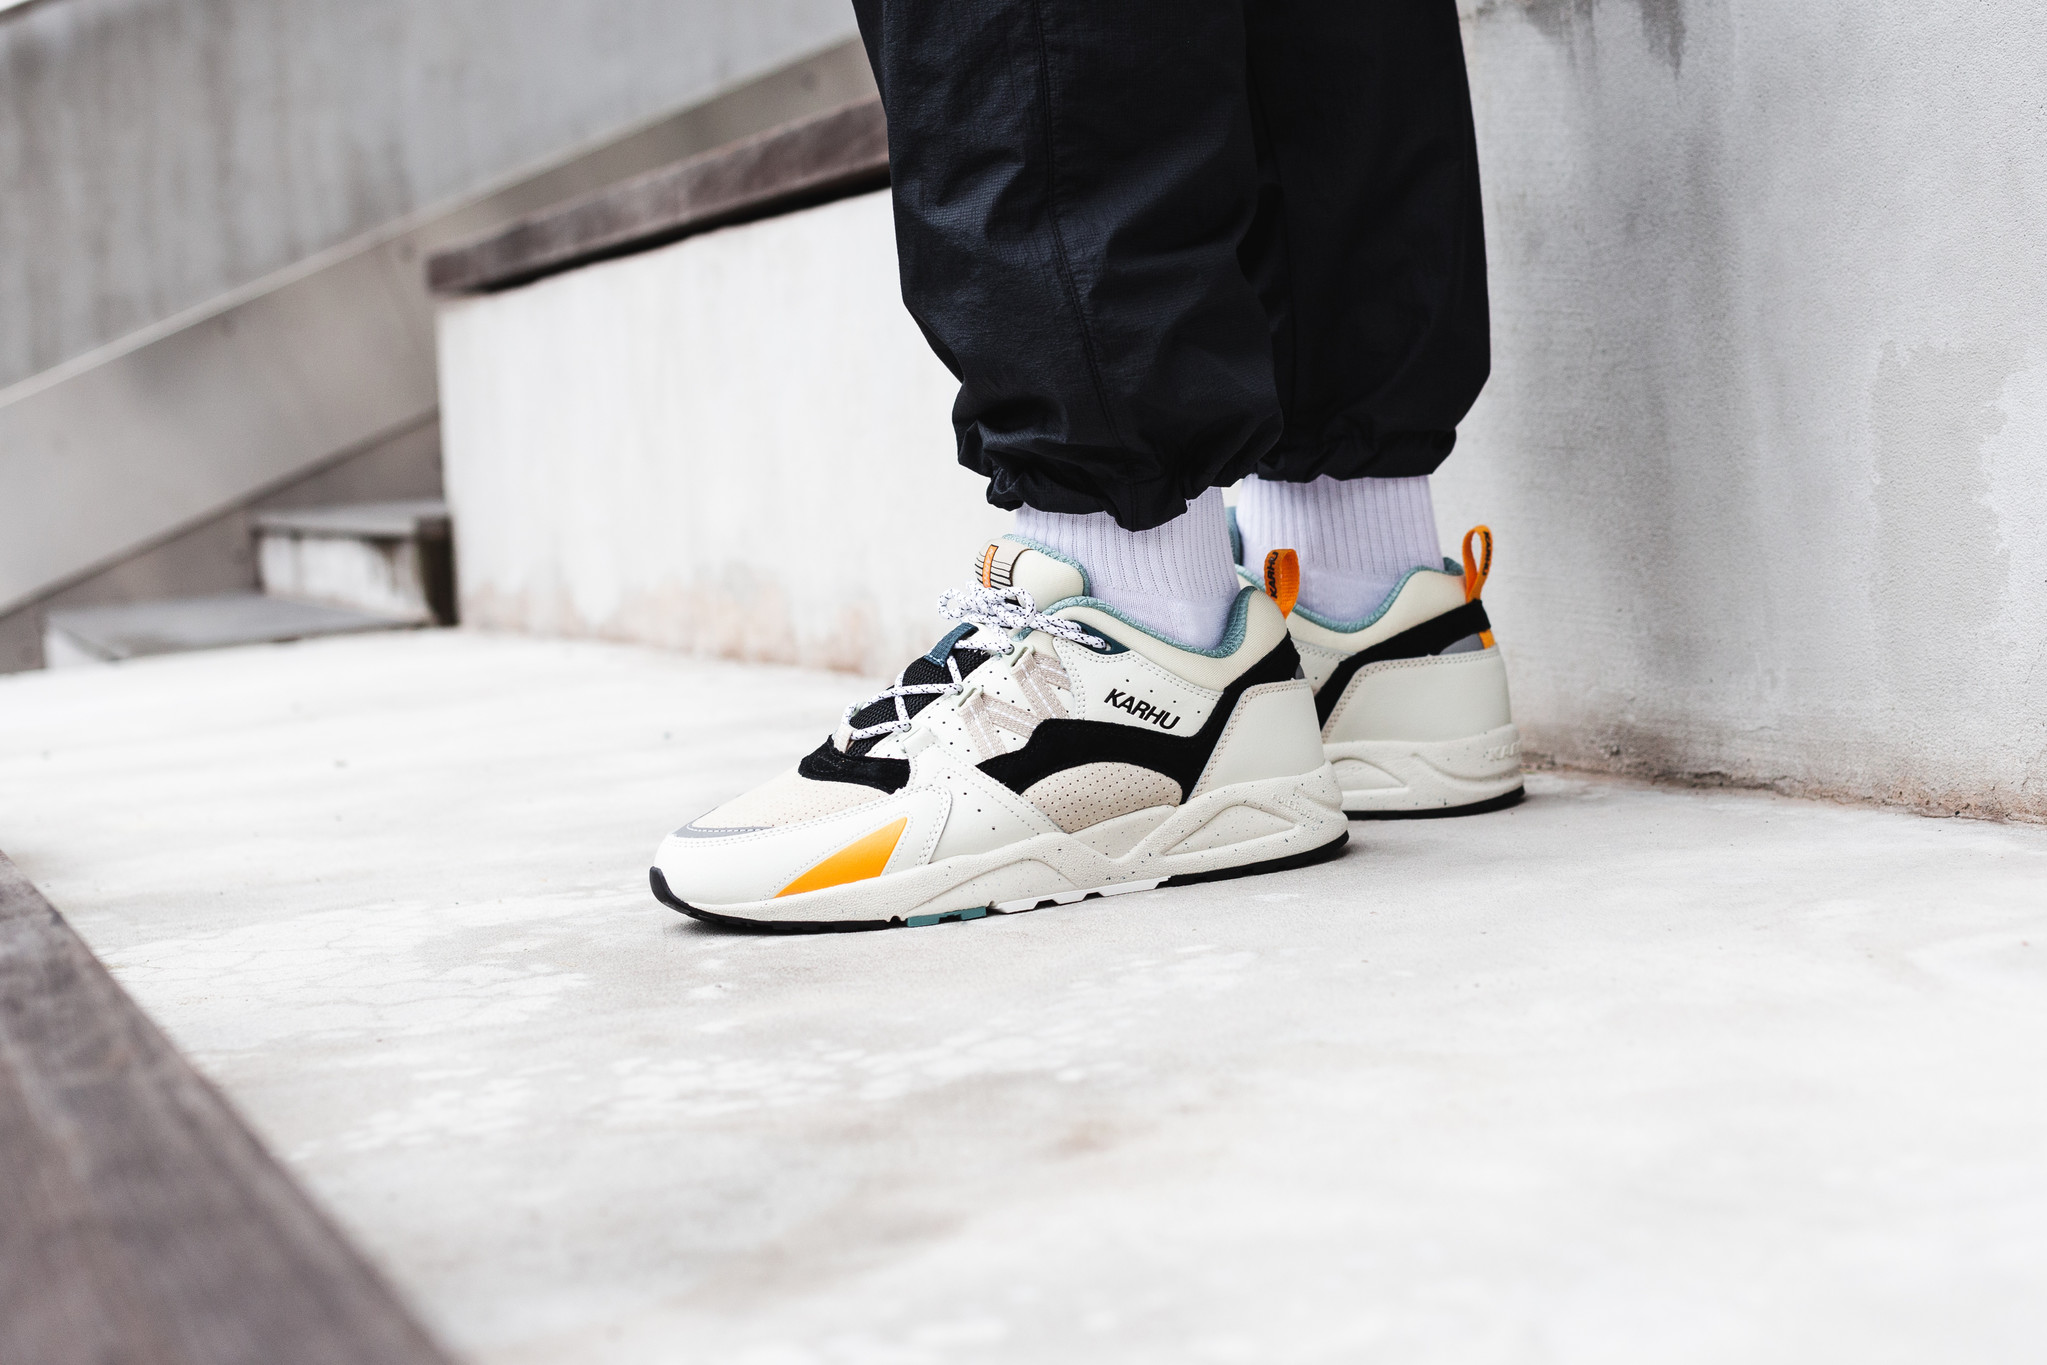 New Karhu /// FW20 Collection